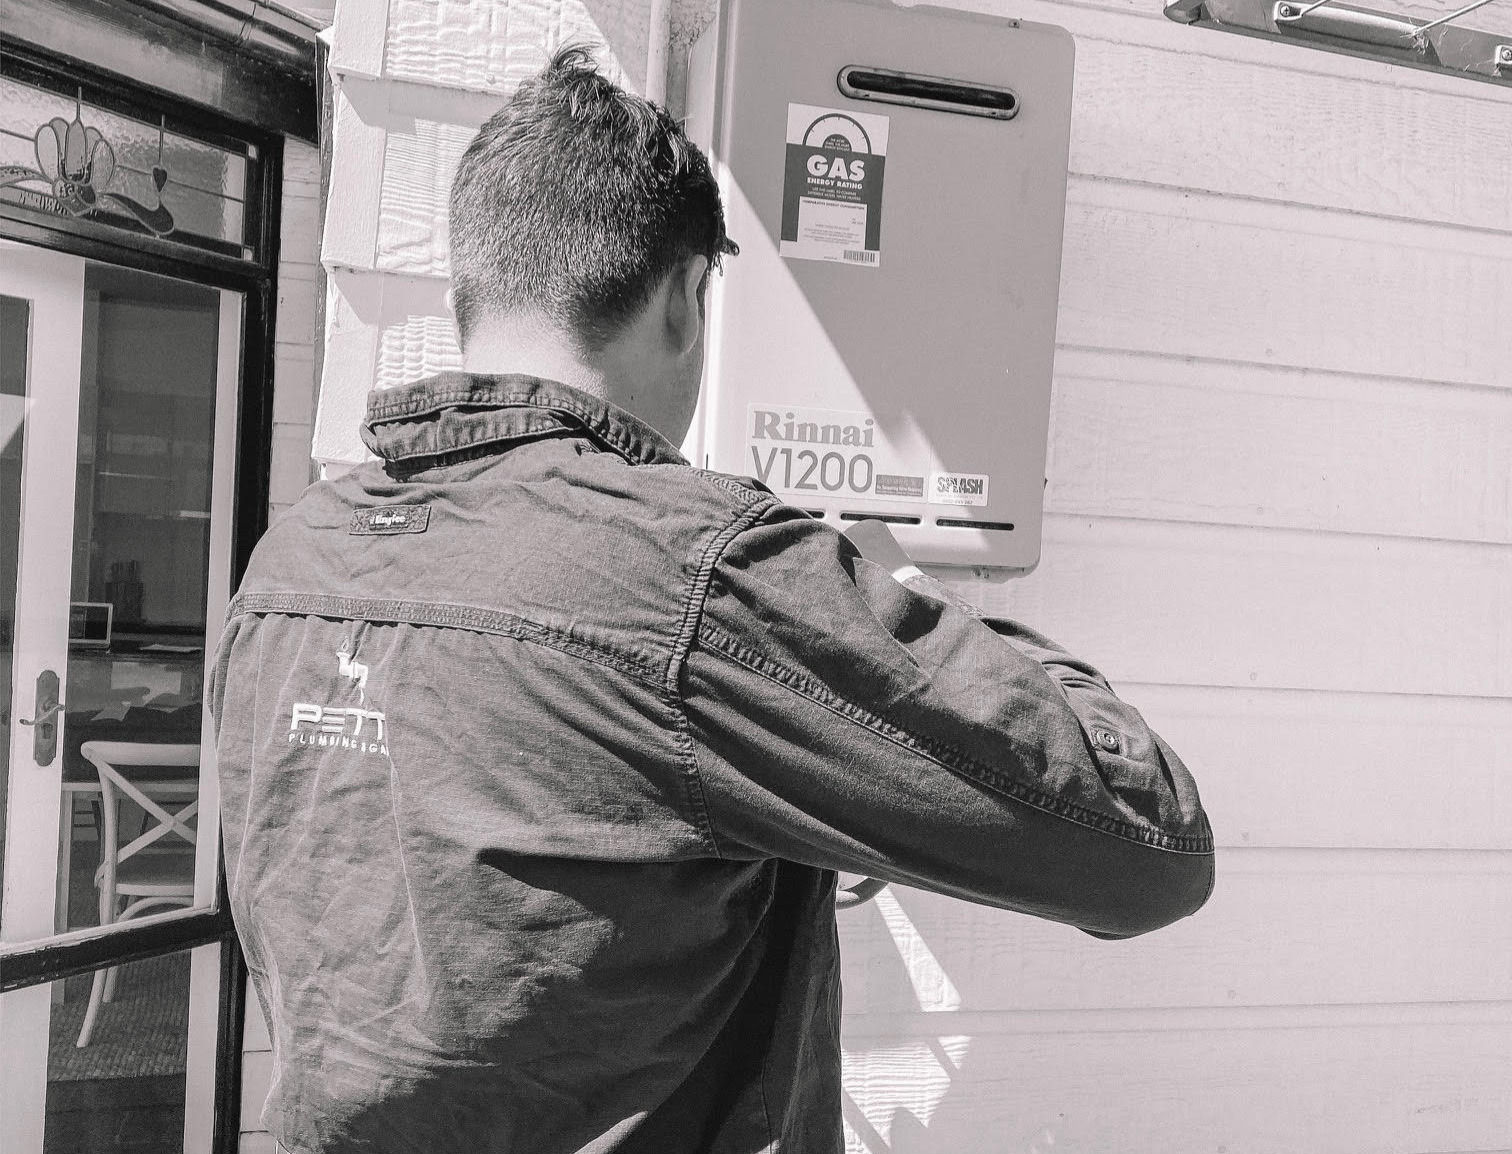 Diy Hot Water Repairs To Try In Adelaide To Get You Out